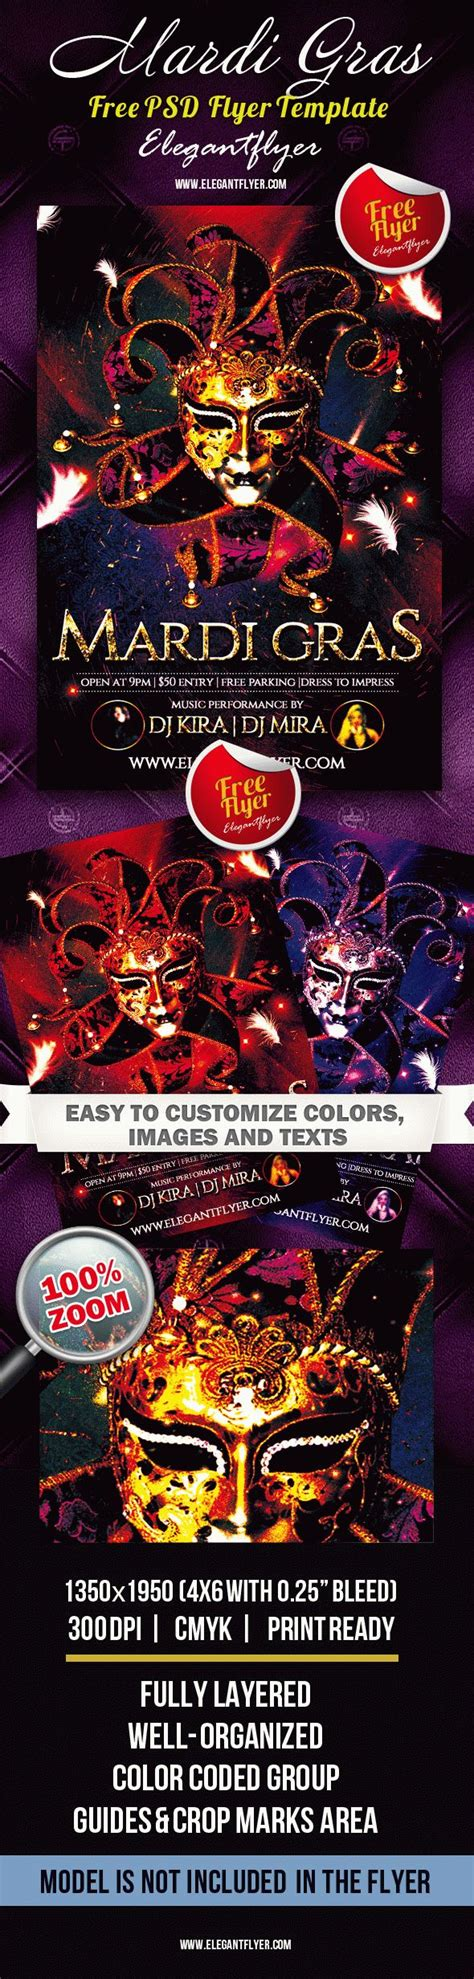 Mardi Gras Club And Party Free Flyer Psd Template By Elegantflyer Mardi Gras Flyer Template Free